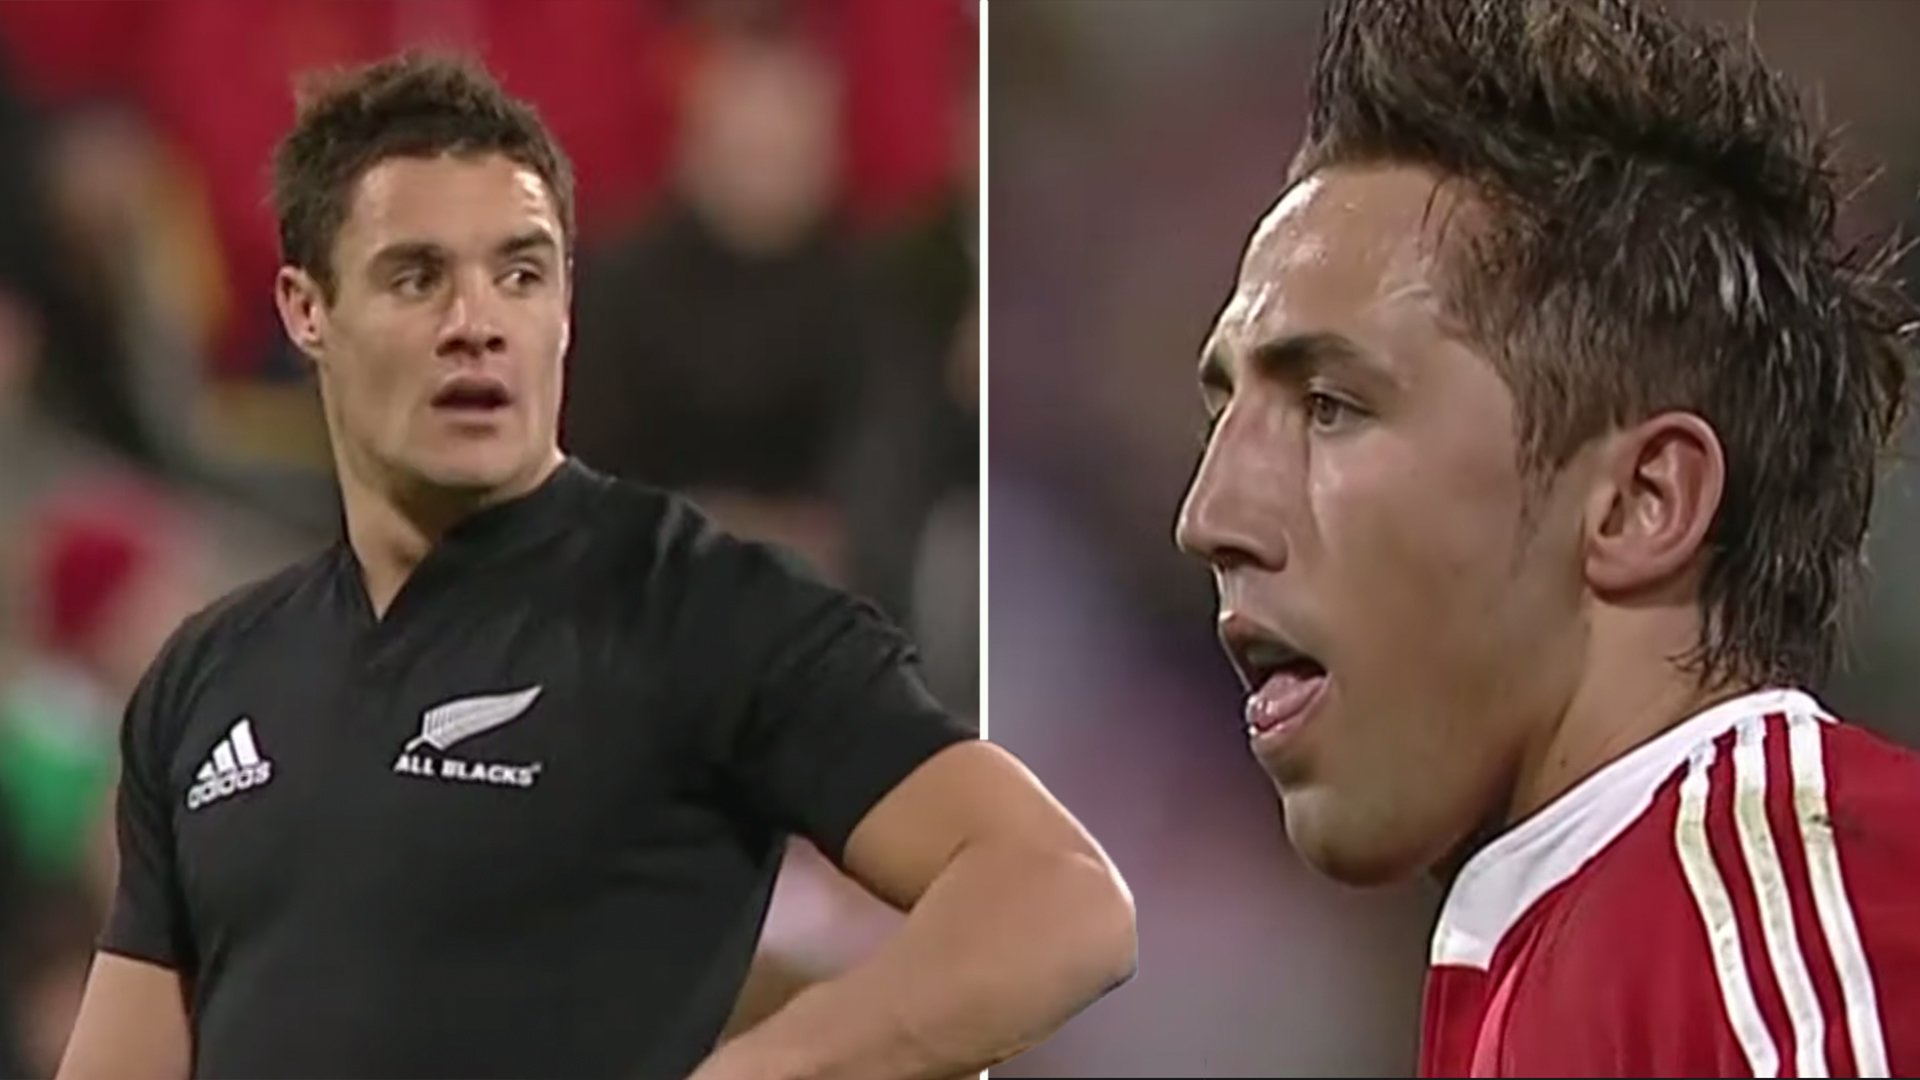 Full footage of has been released of the game when Dan Carter changed rugby forever